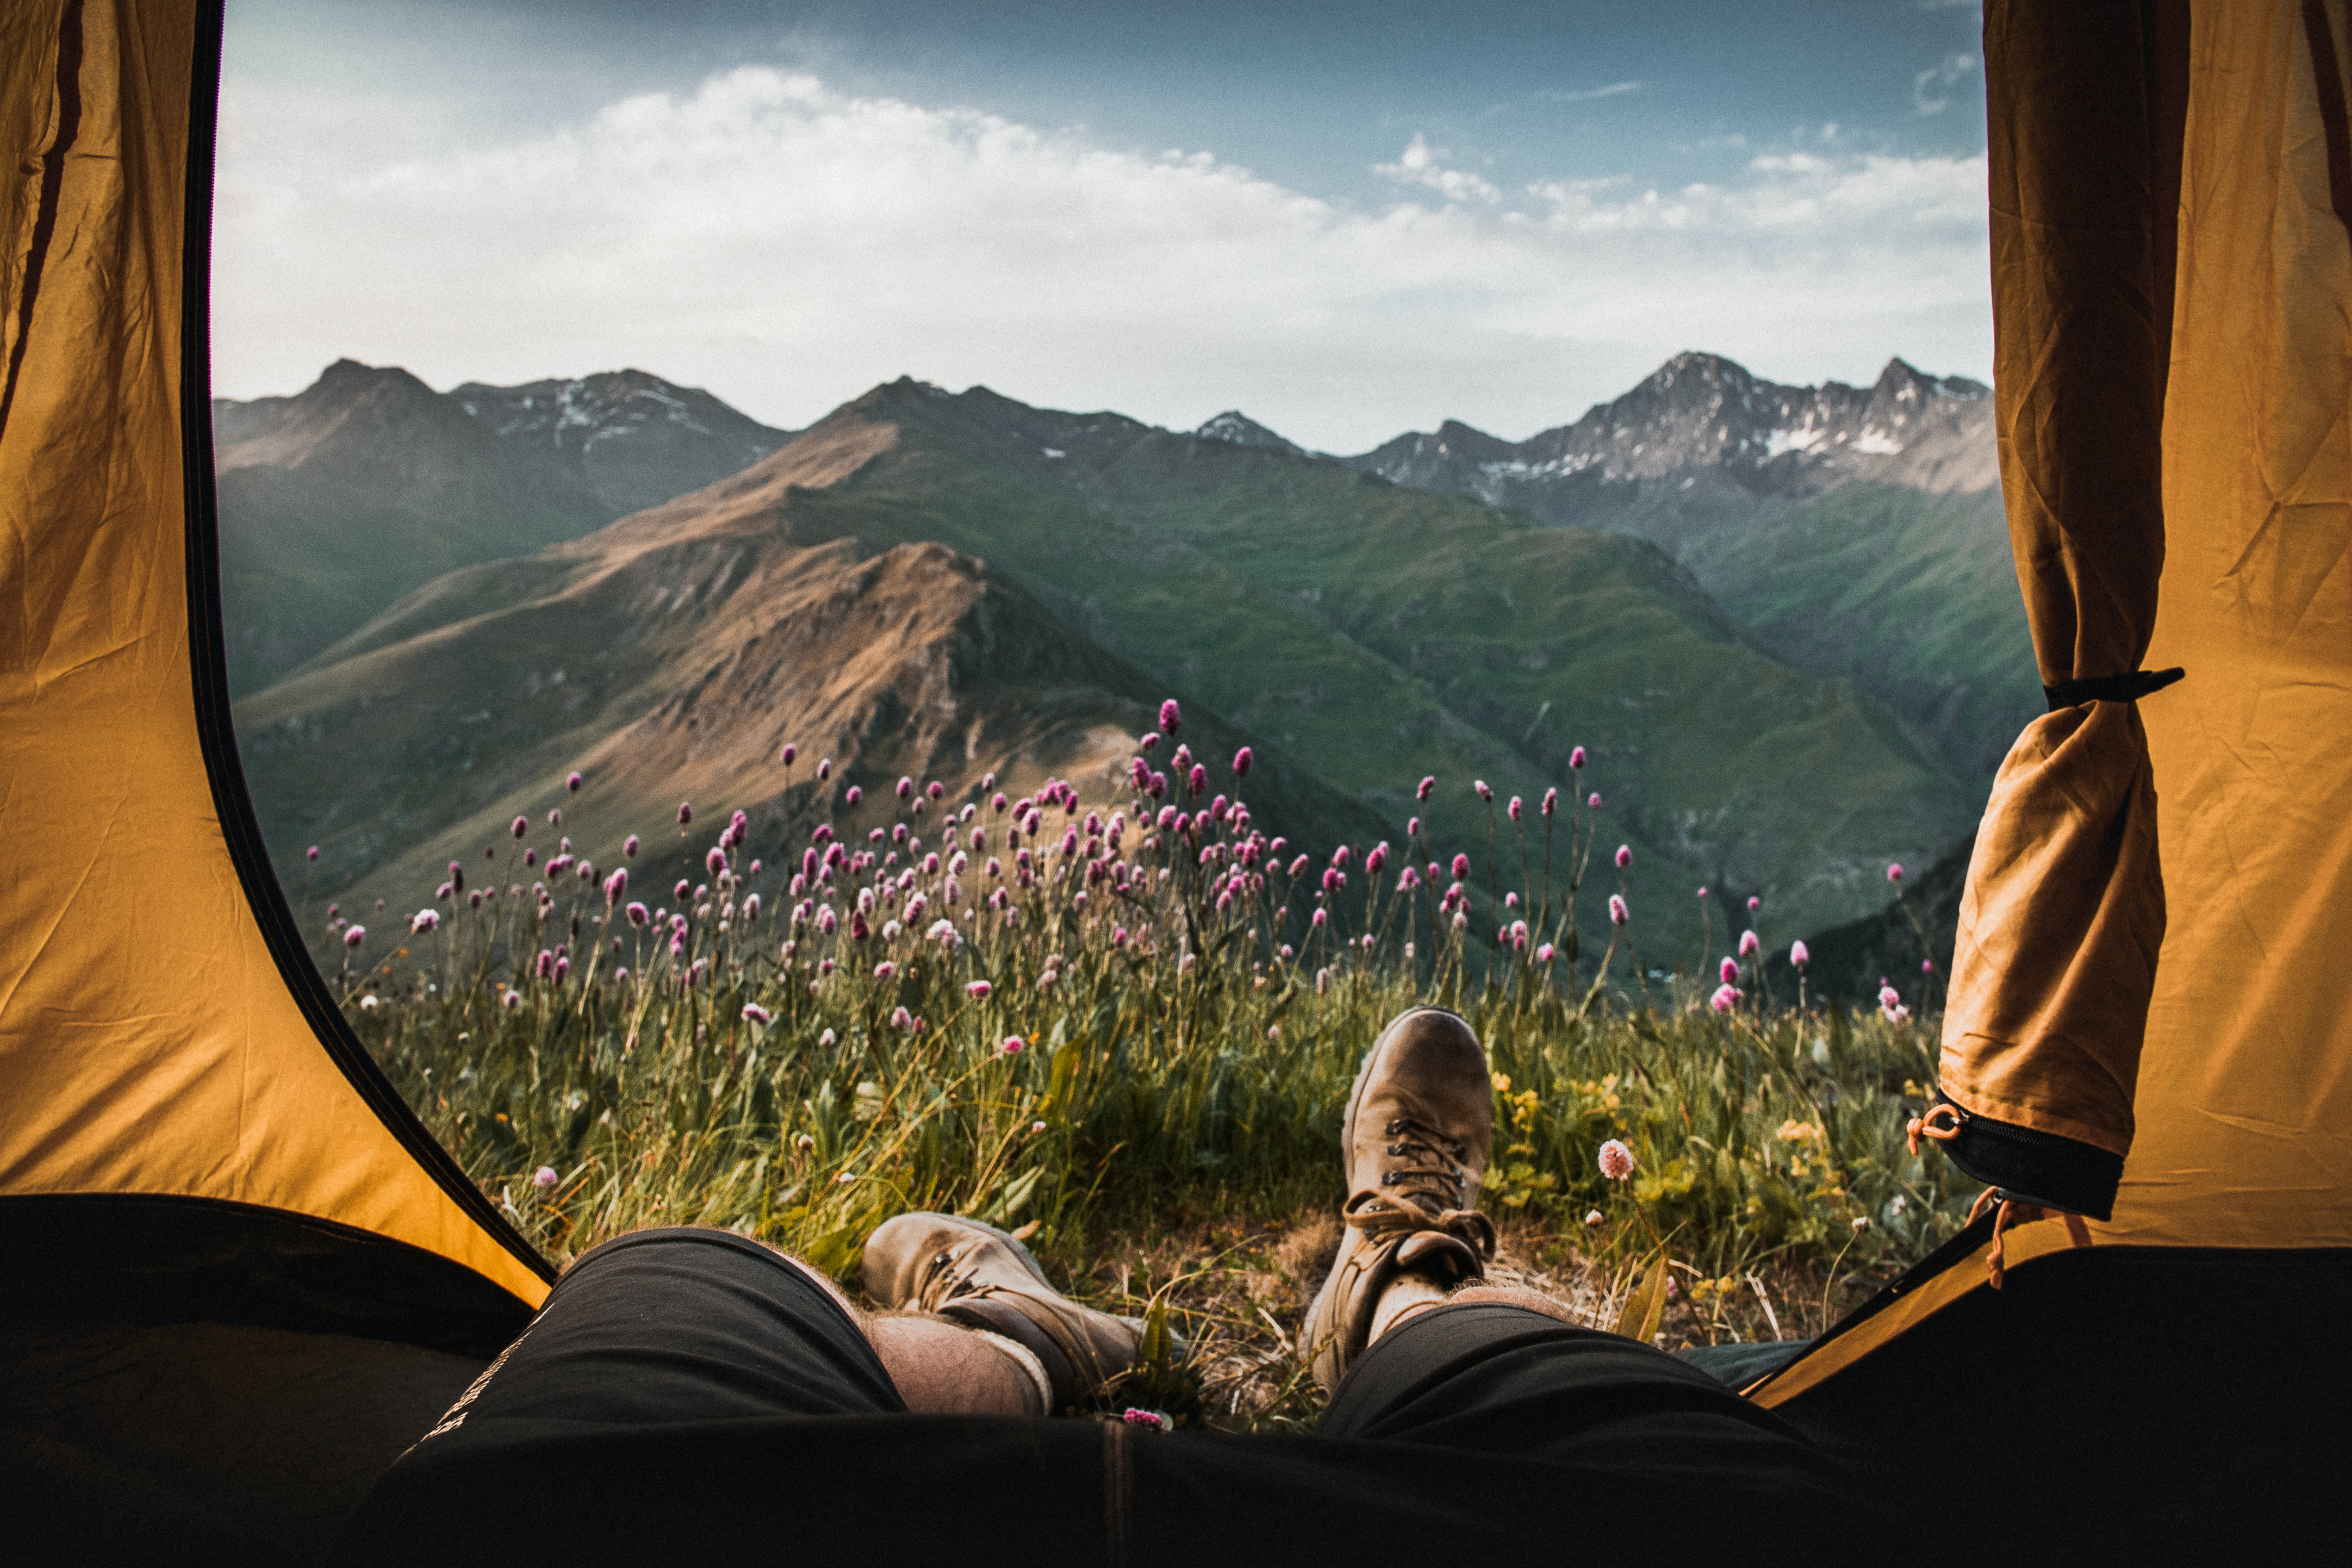 person lying inside tent and overlooking mountain